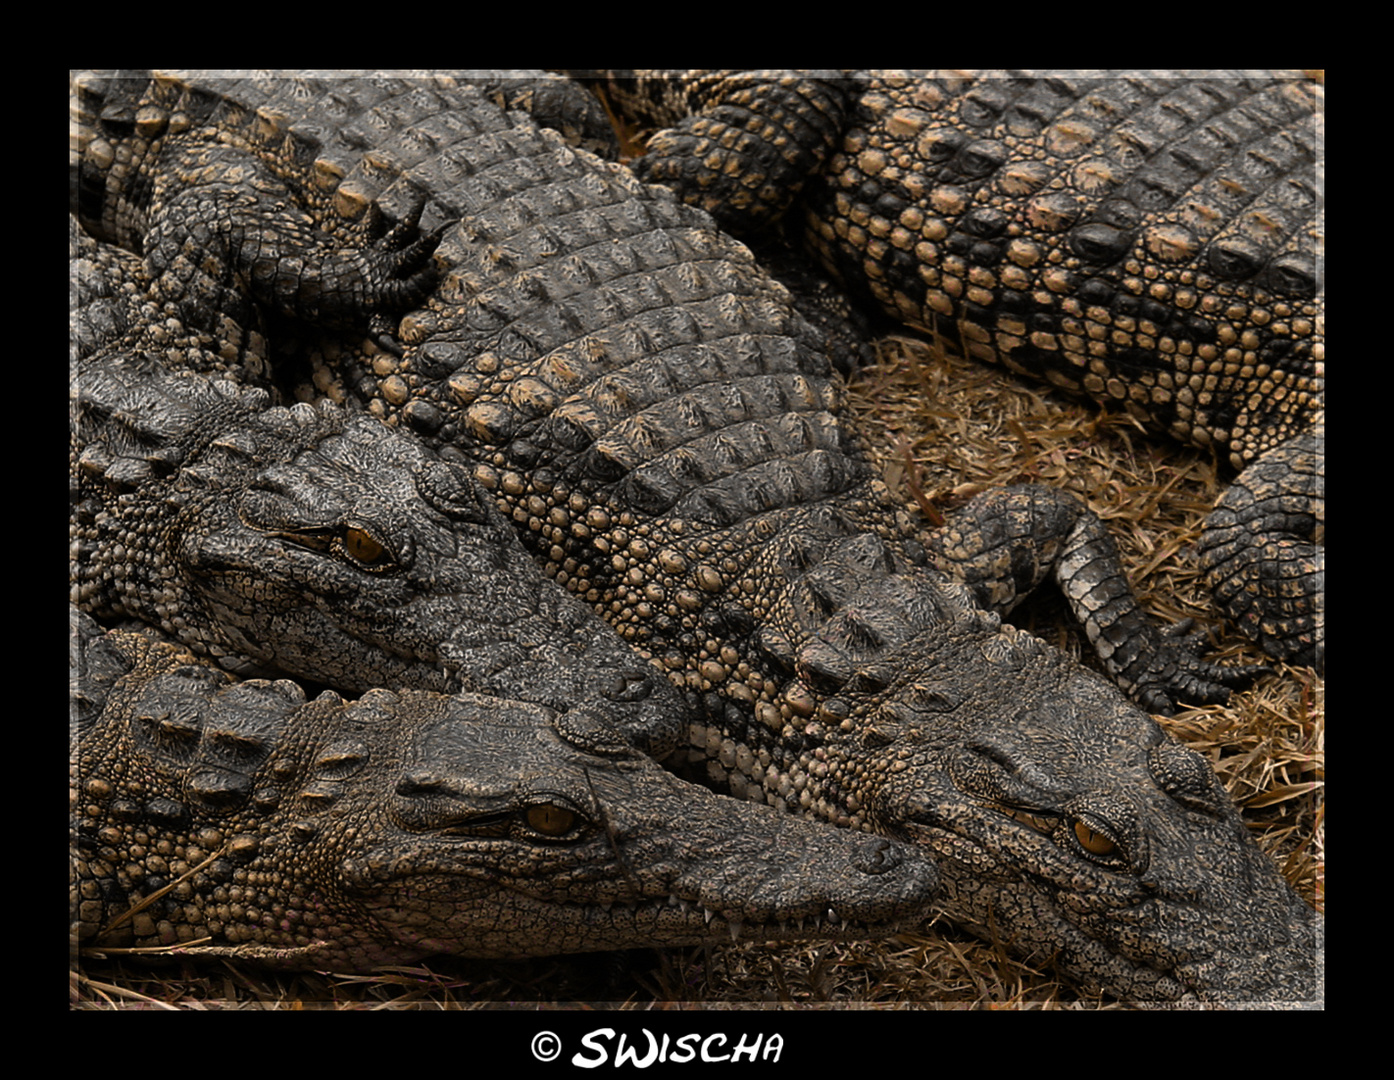 South African Crocodiles